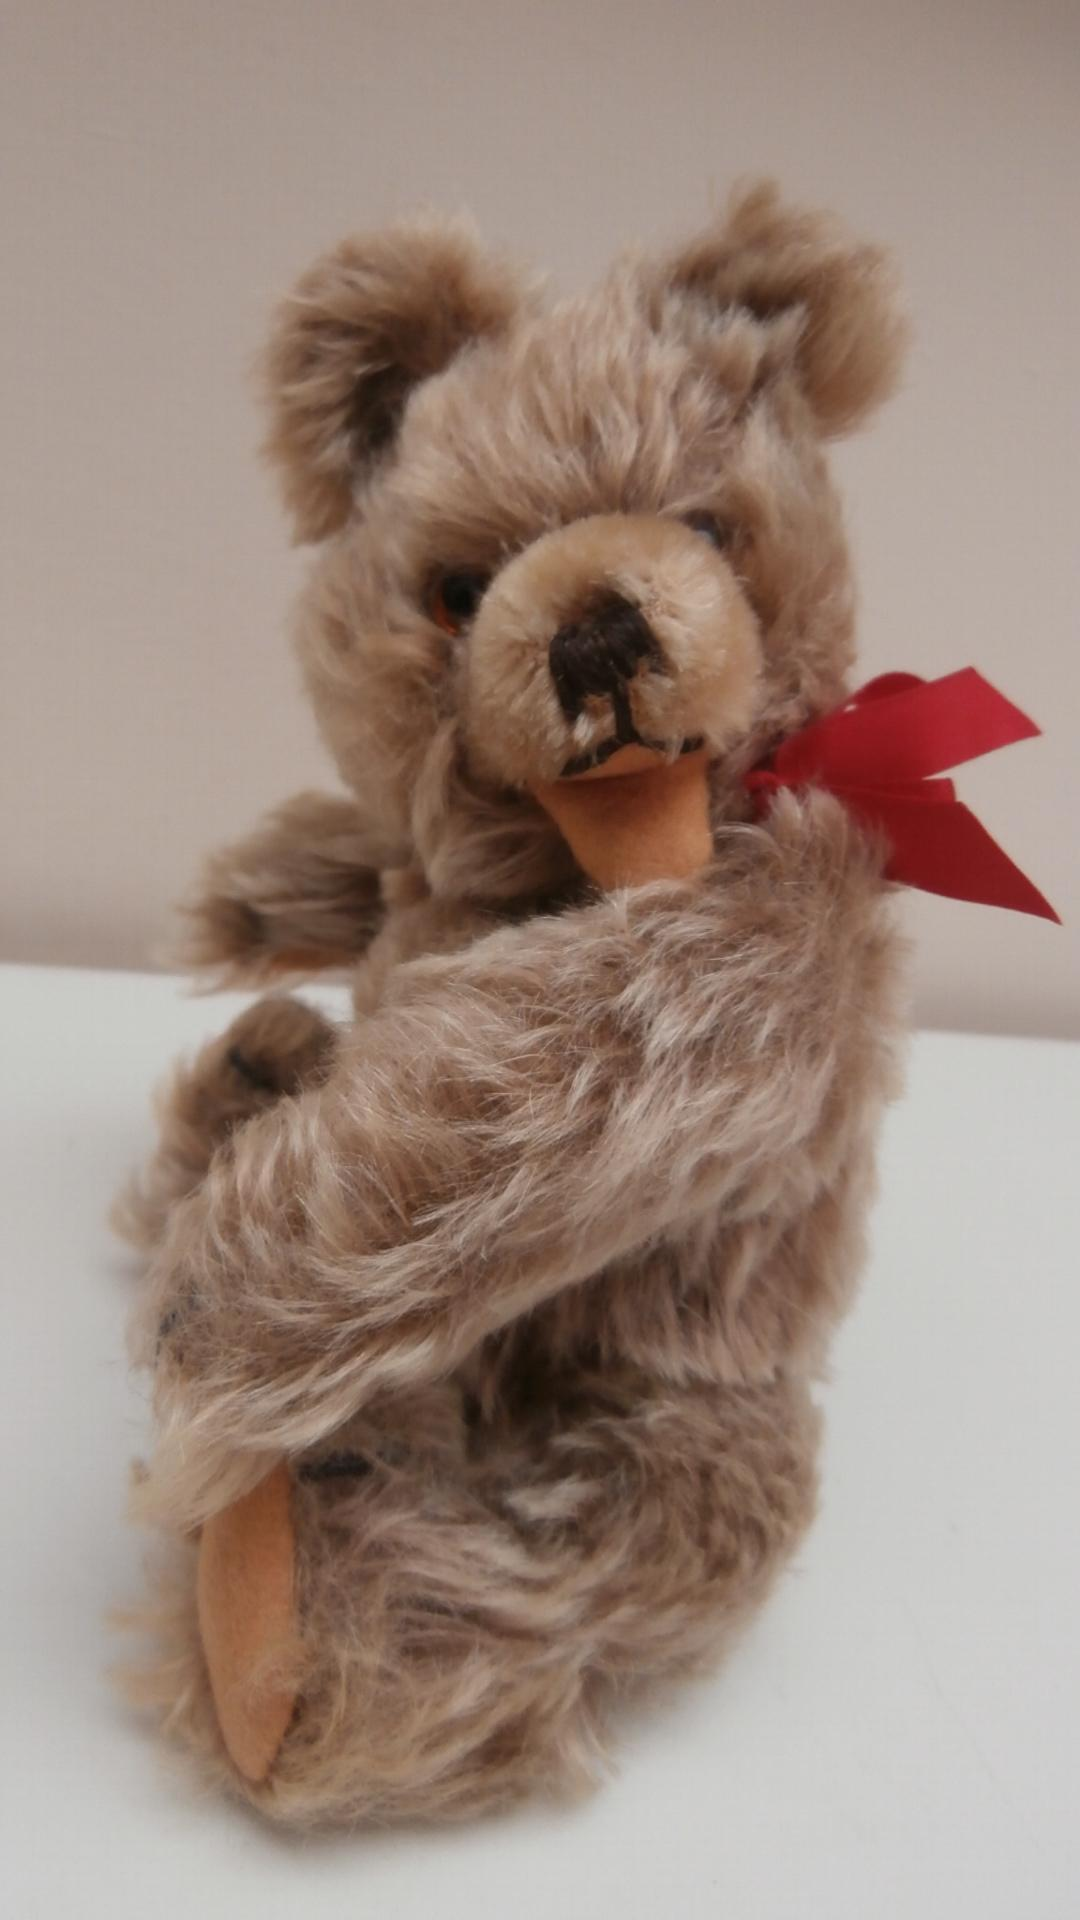 Tommy, Sweet Vintage Hermann Zotty Type Teddy Bear, No Id's